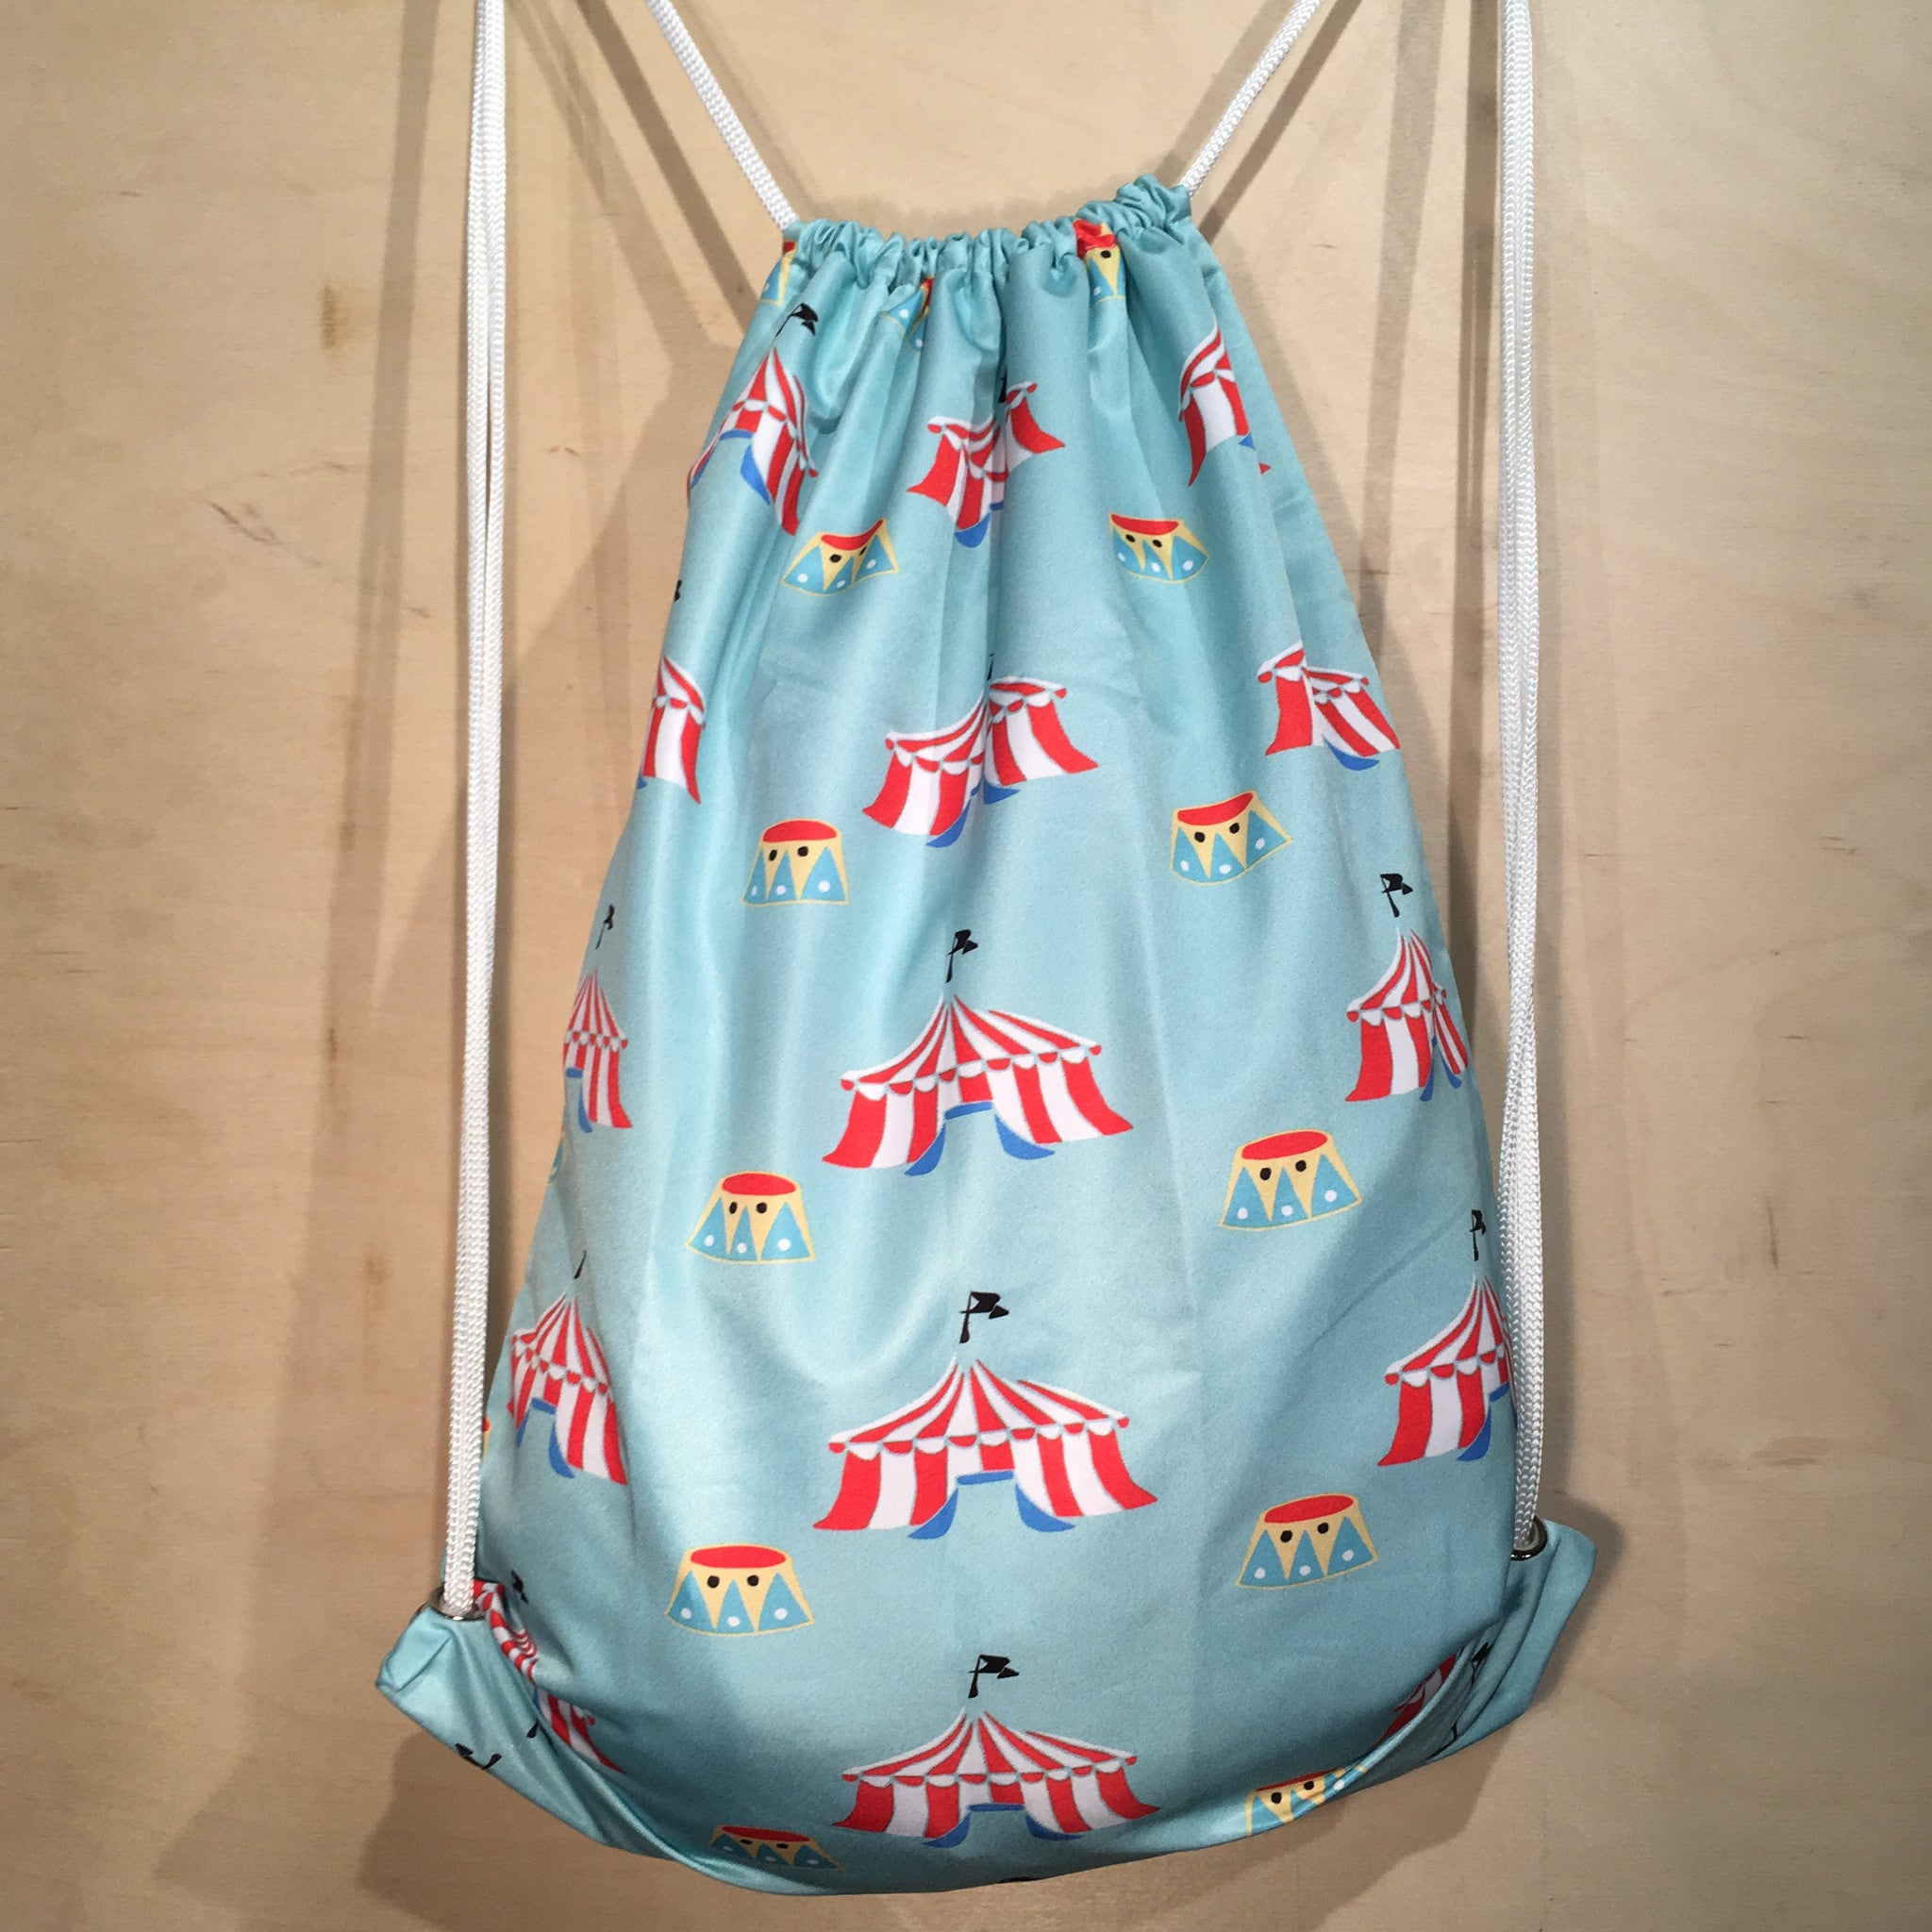 Drawstring Bag | Tent by Monsieur Clown - Monsieur Clown - 1